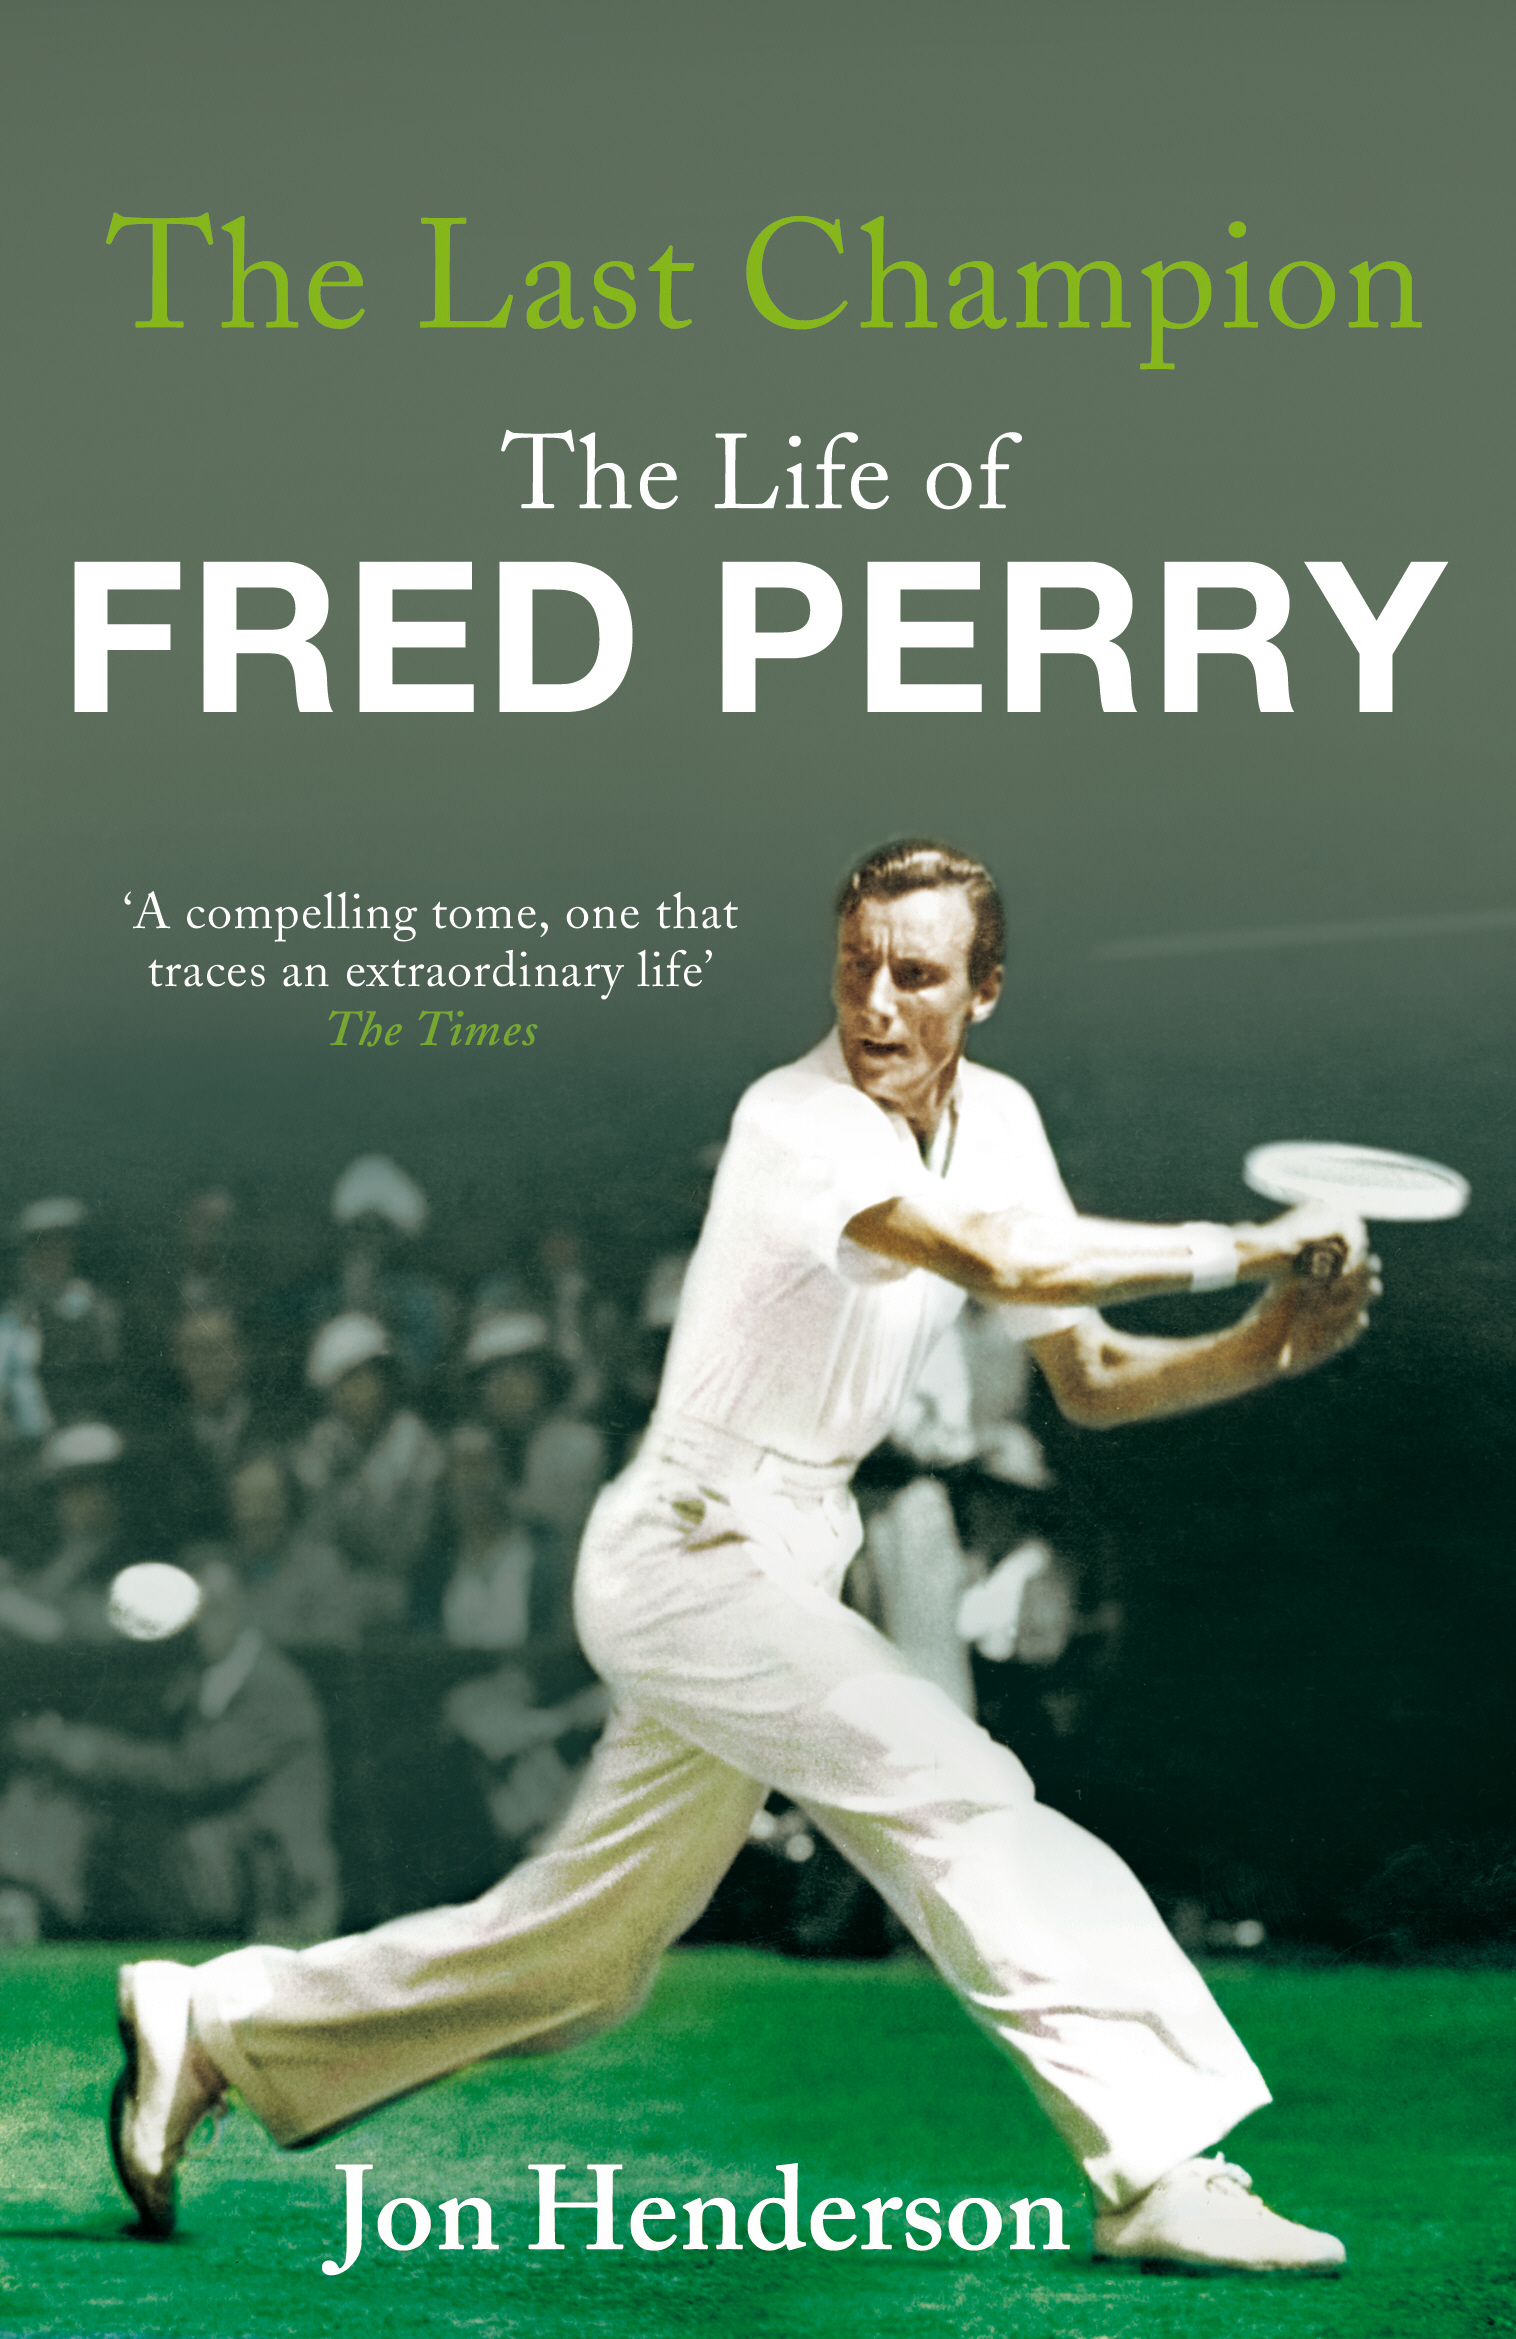 The Last Champion The Life of Fred Perry